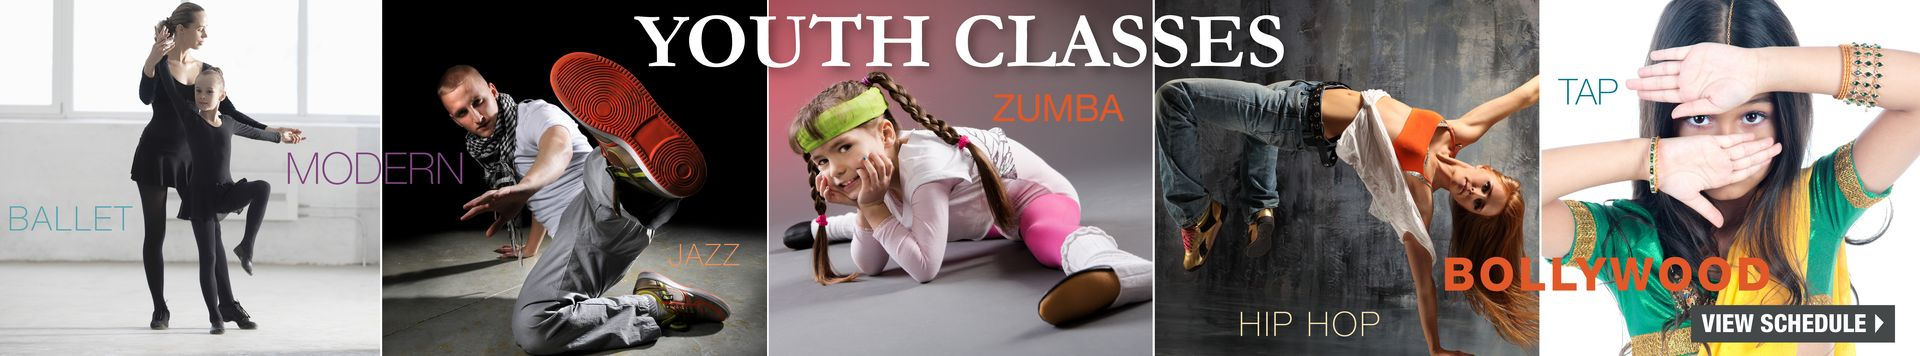 Youth-Classes-V5